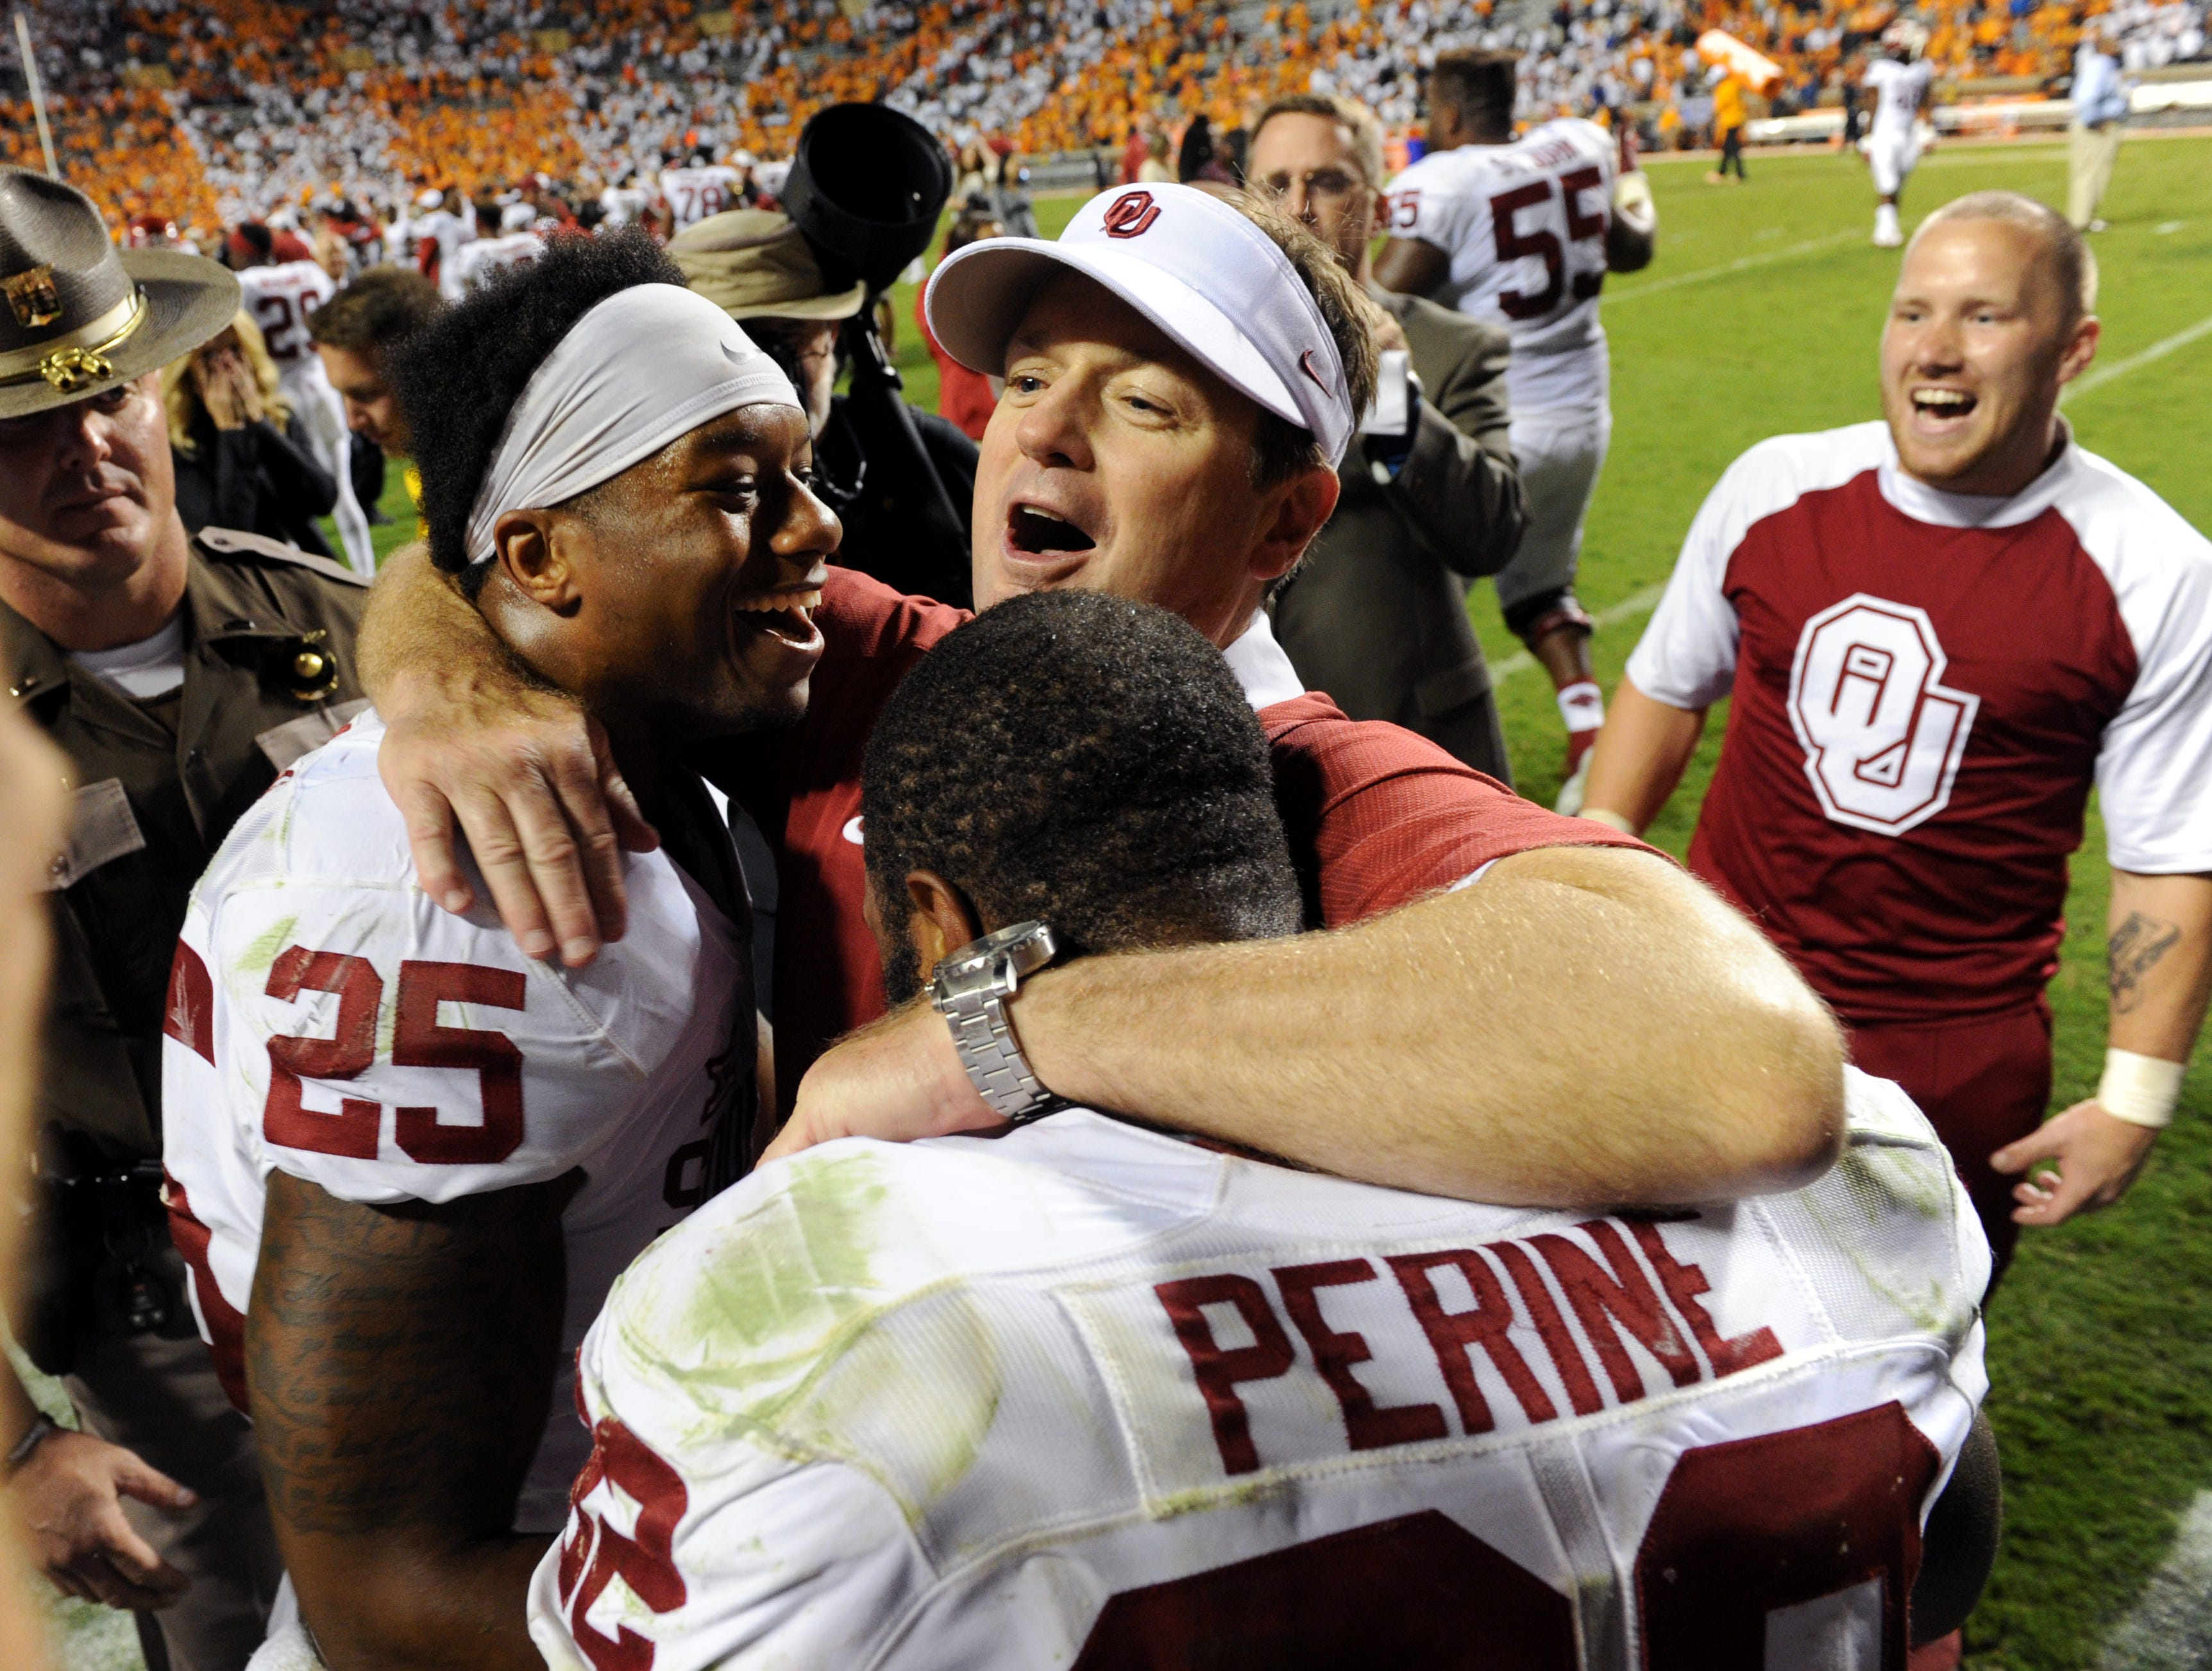 Oklahoma head coach Bob Stoops hugs Joe Mixon (25) and Samaje Perine (32) following their 31-24 victory over Tennessee in Neyland Stadium Saturday, Sep. 12, 2015.